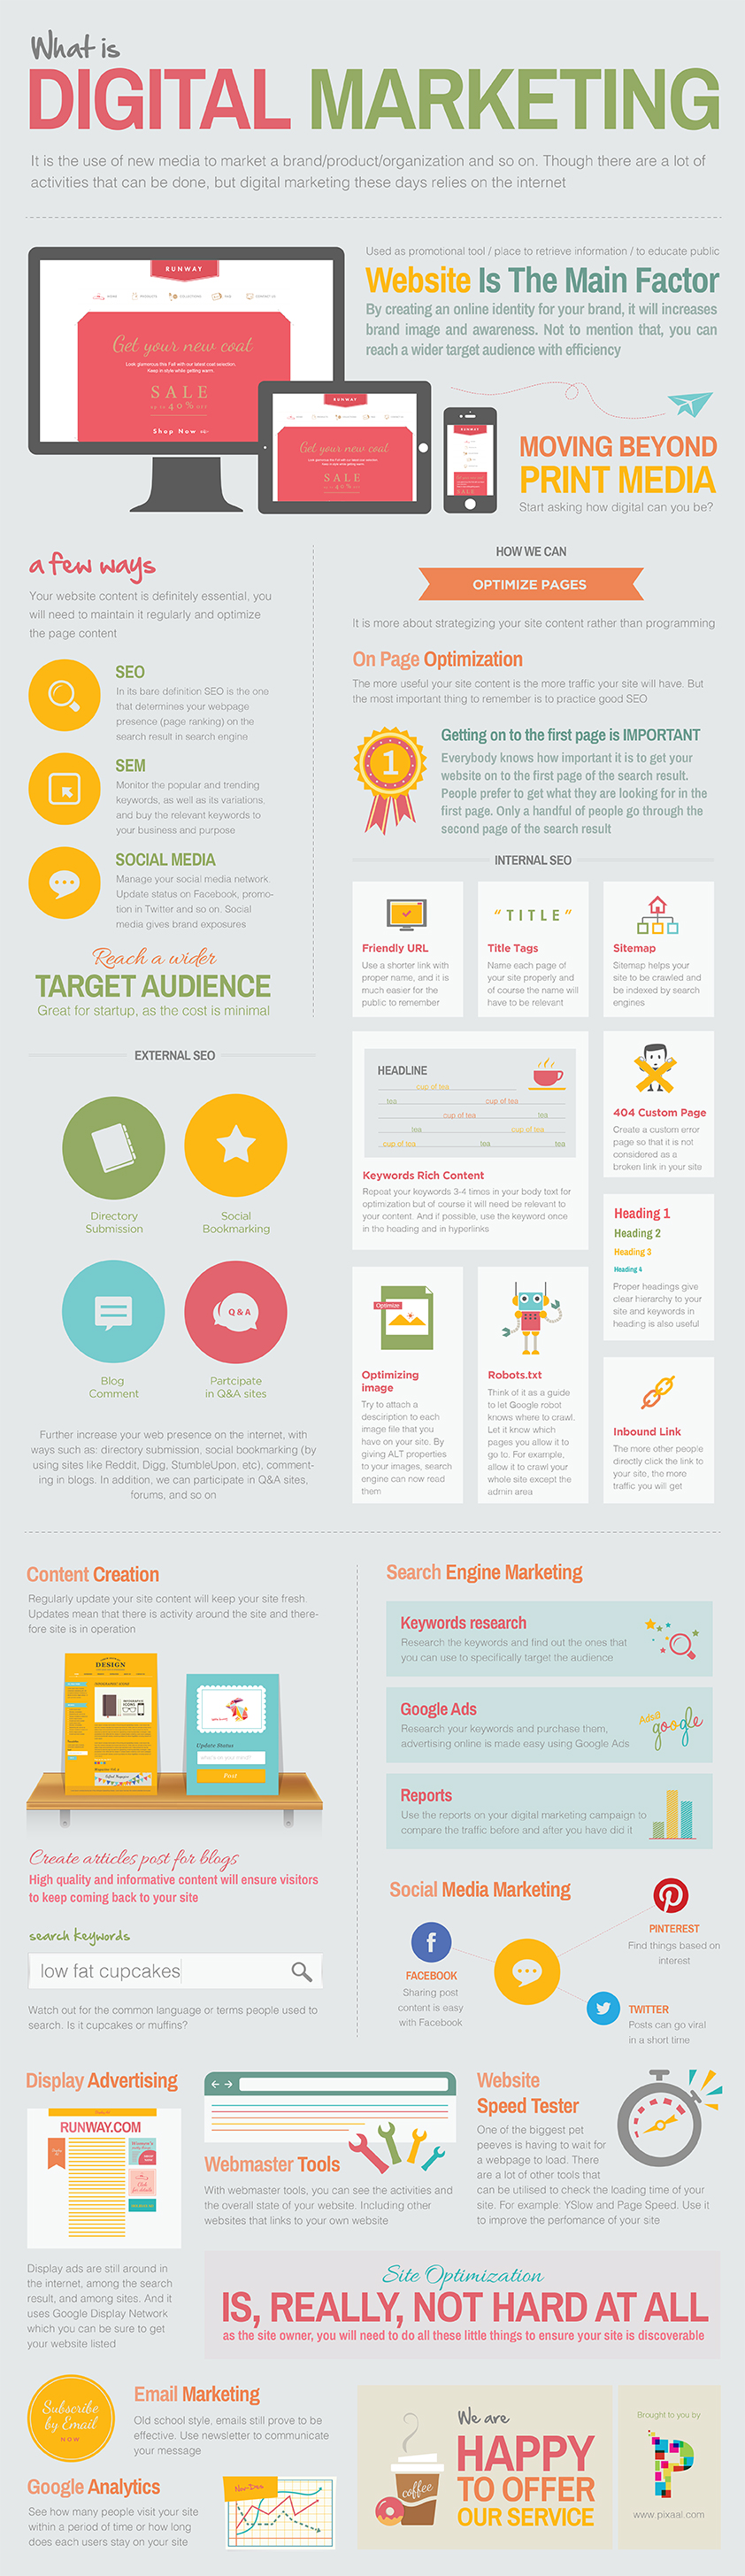 Digital Marketing 101-Infographic